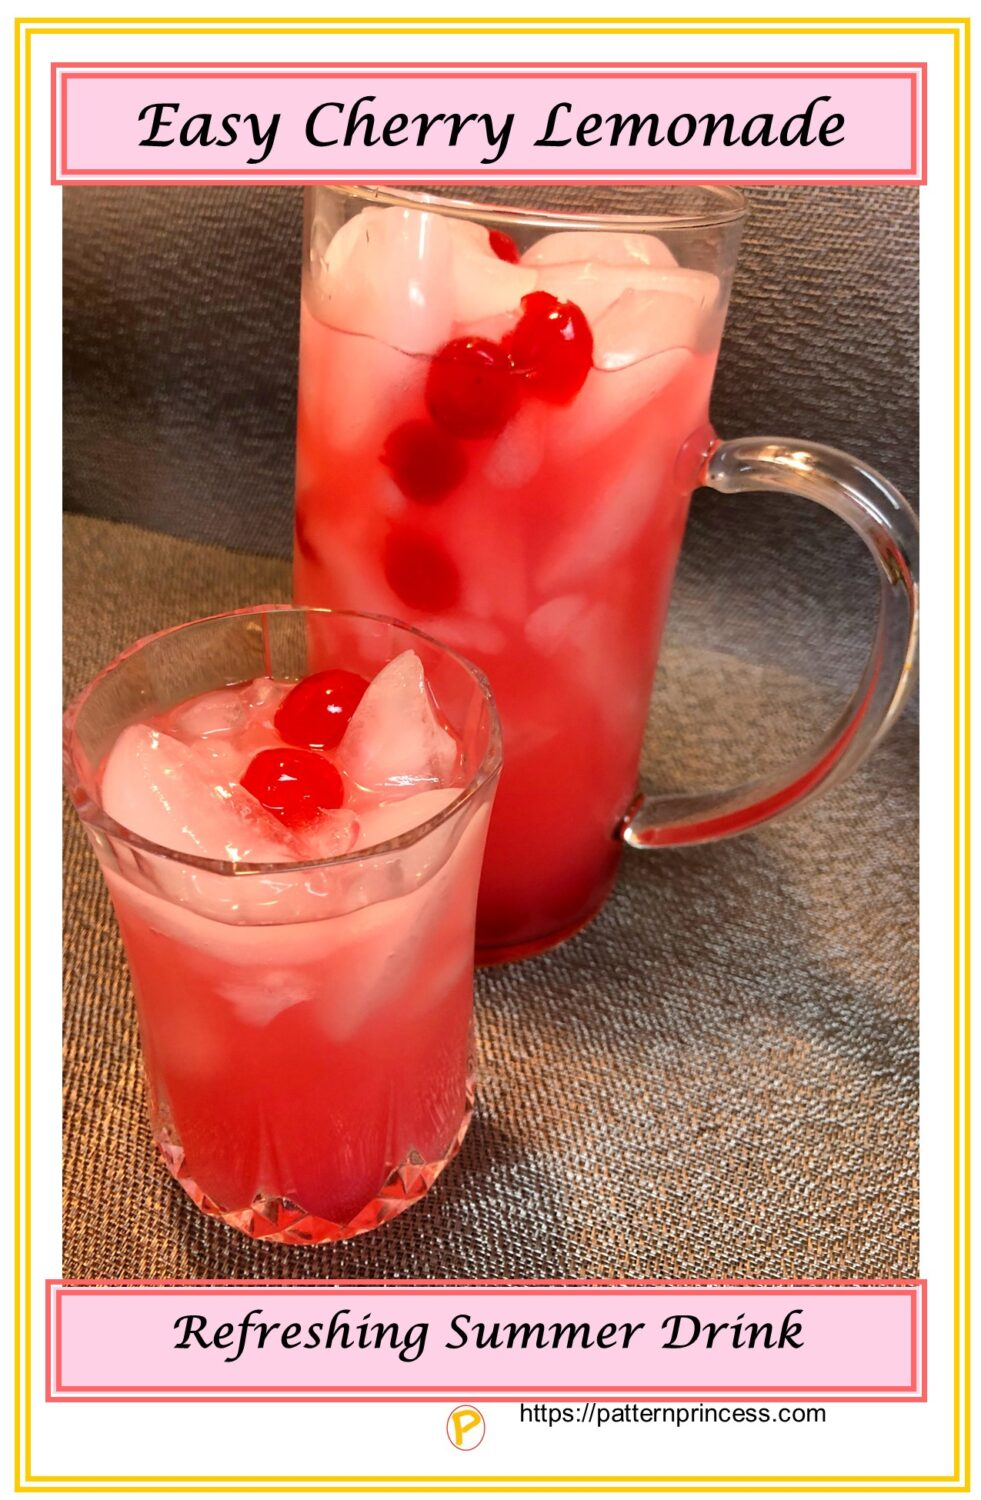 Easy Cherry Lemonade Recipe